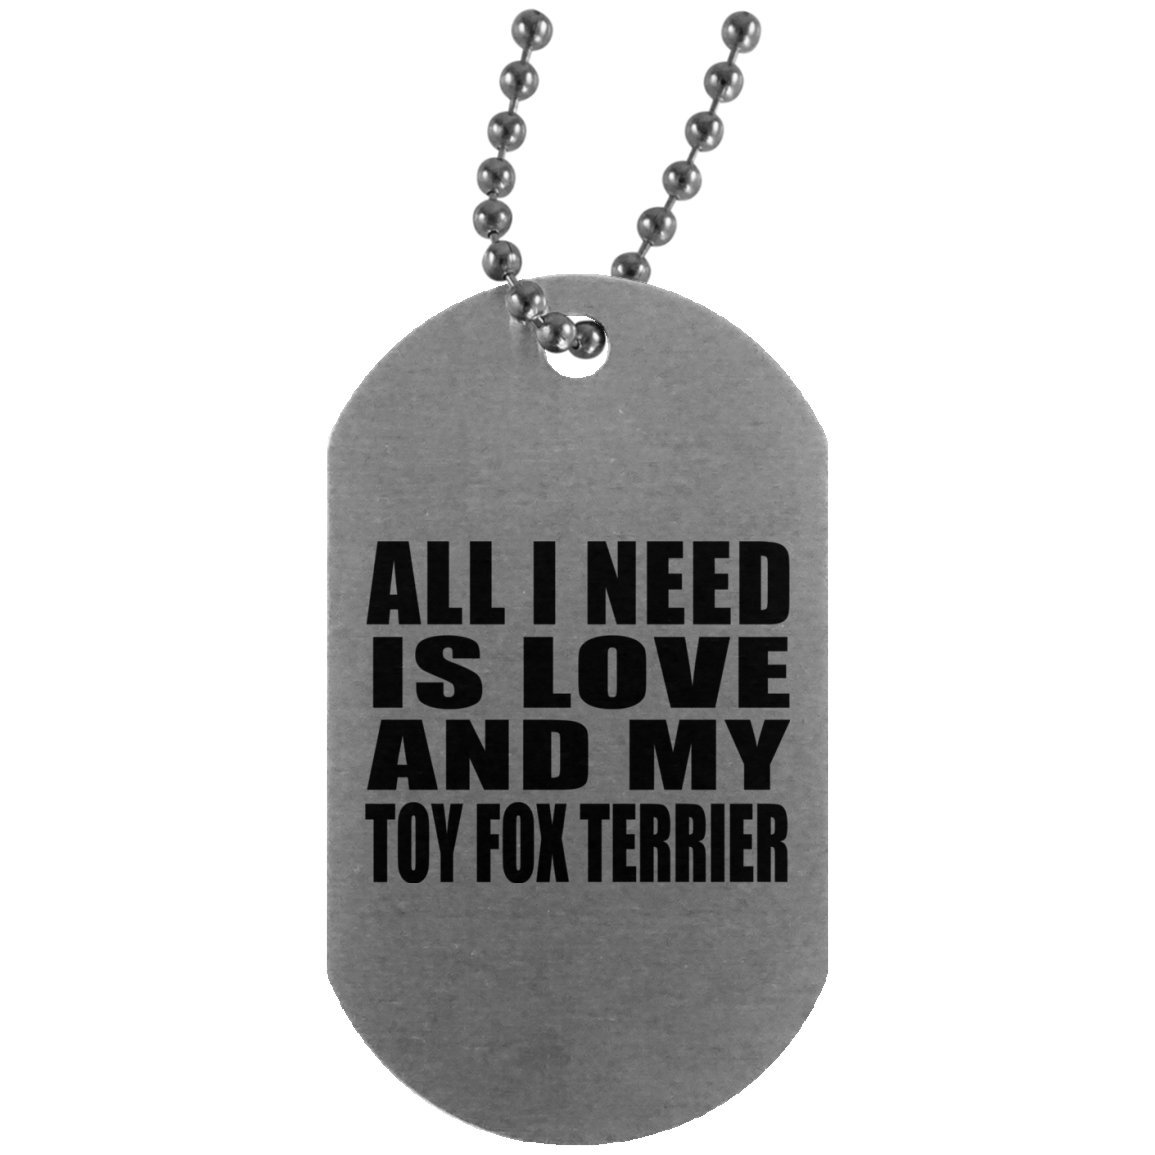 Designsify Dog Lover Dog Tag, All I Need Is Love And My Toy Fox Terrier - Military Dog Tag, Aluminum ID Tag Necklace, Best Gift for Dog Owner, Pet Lover, Family, Friend, Birthday, Holiday